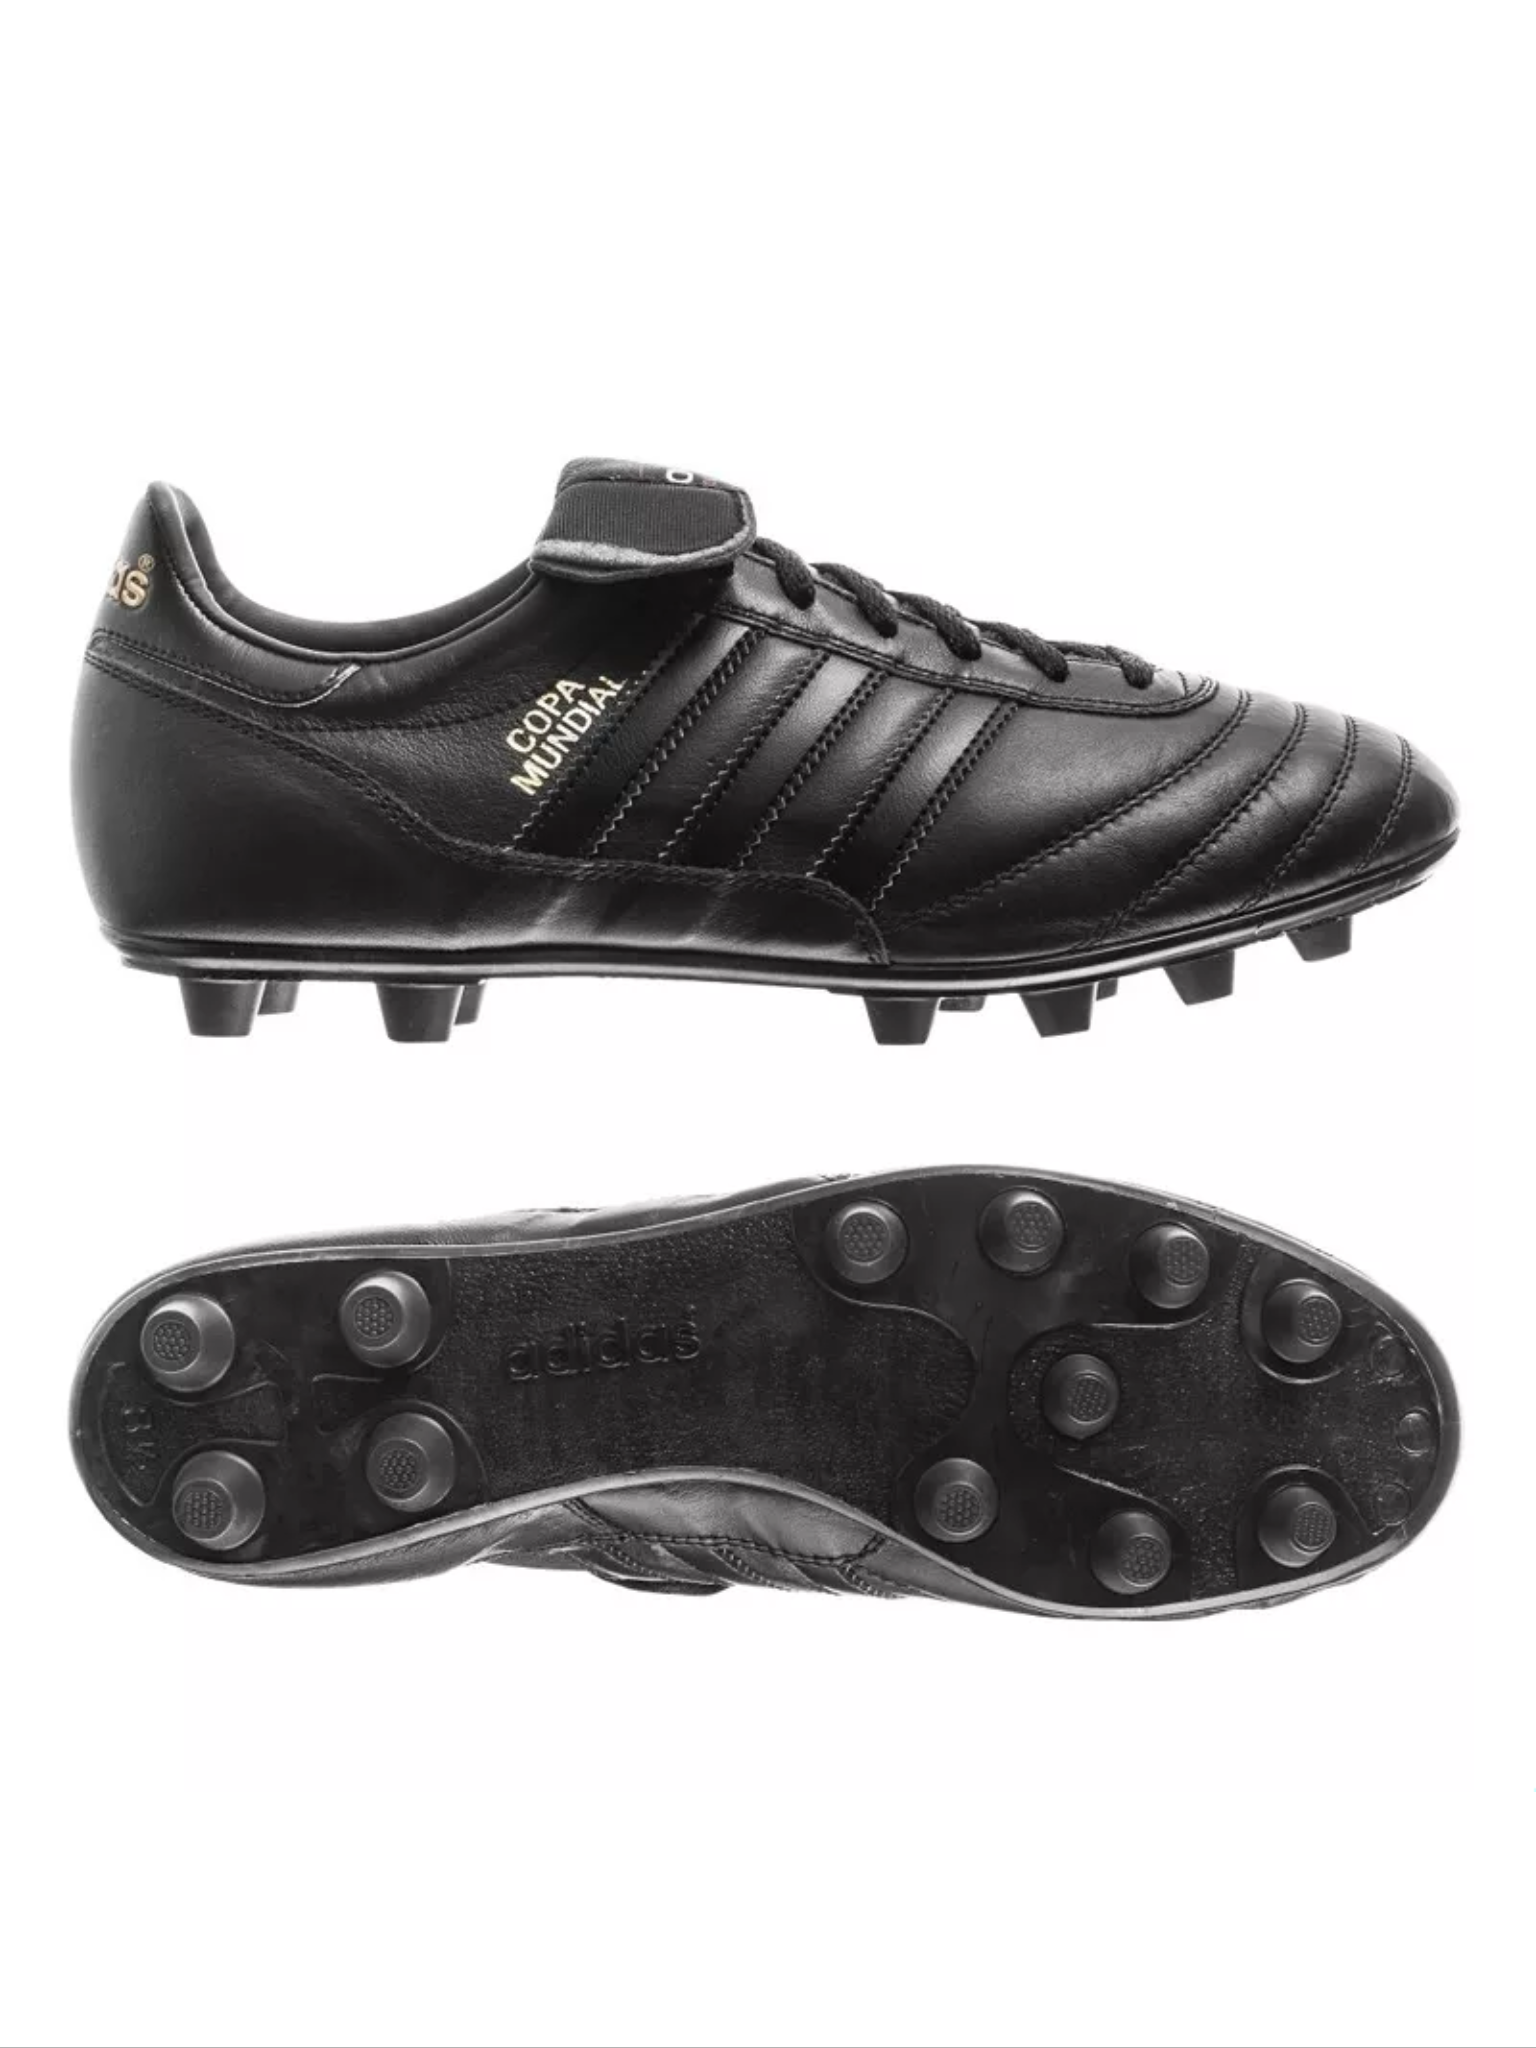 best sneakers 7d04d eba86 Adidas Copa Mundial in black on black. Wear like iron and feel like  butter... Adidas Copa Mundial Blackout Edition